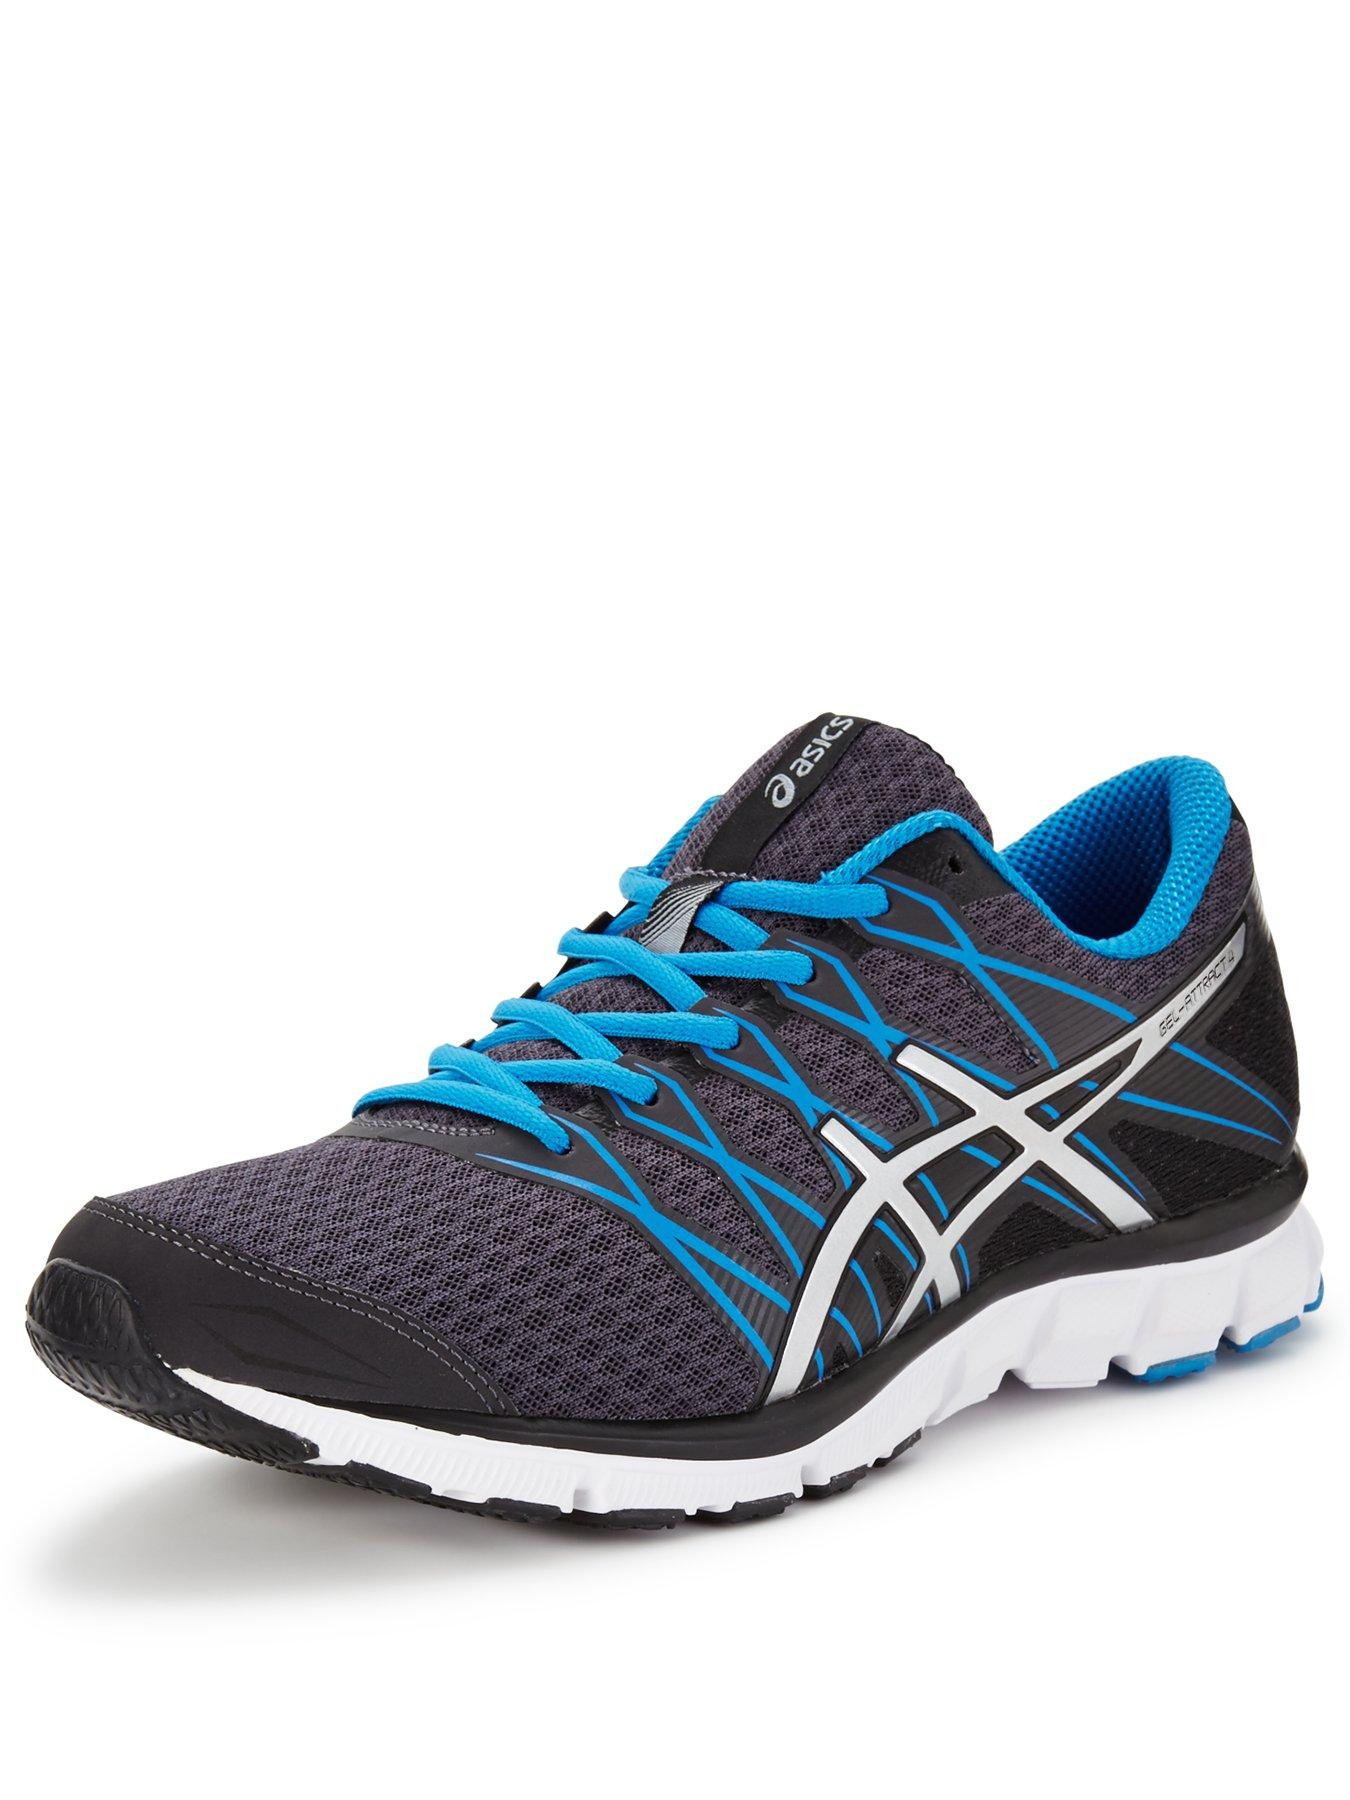 Running Shoes Online Ireland